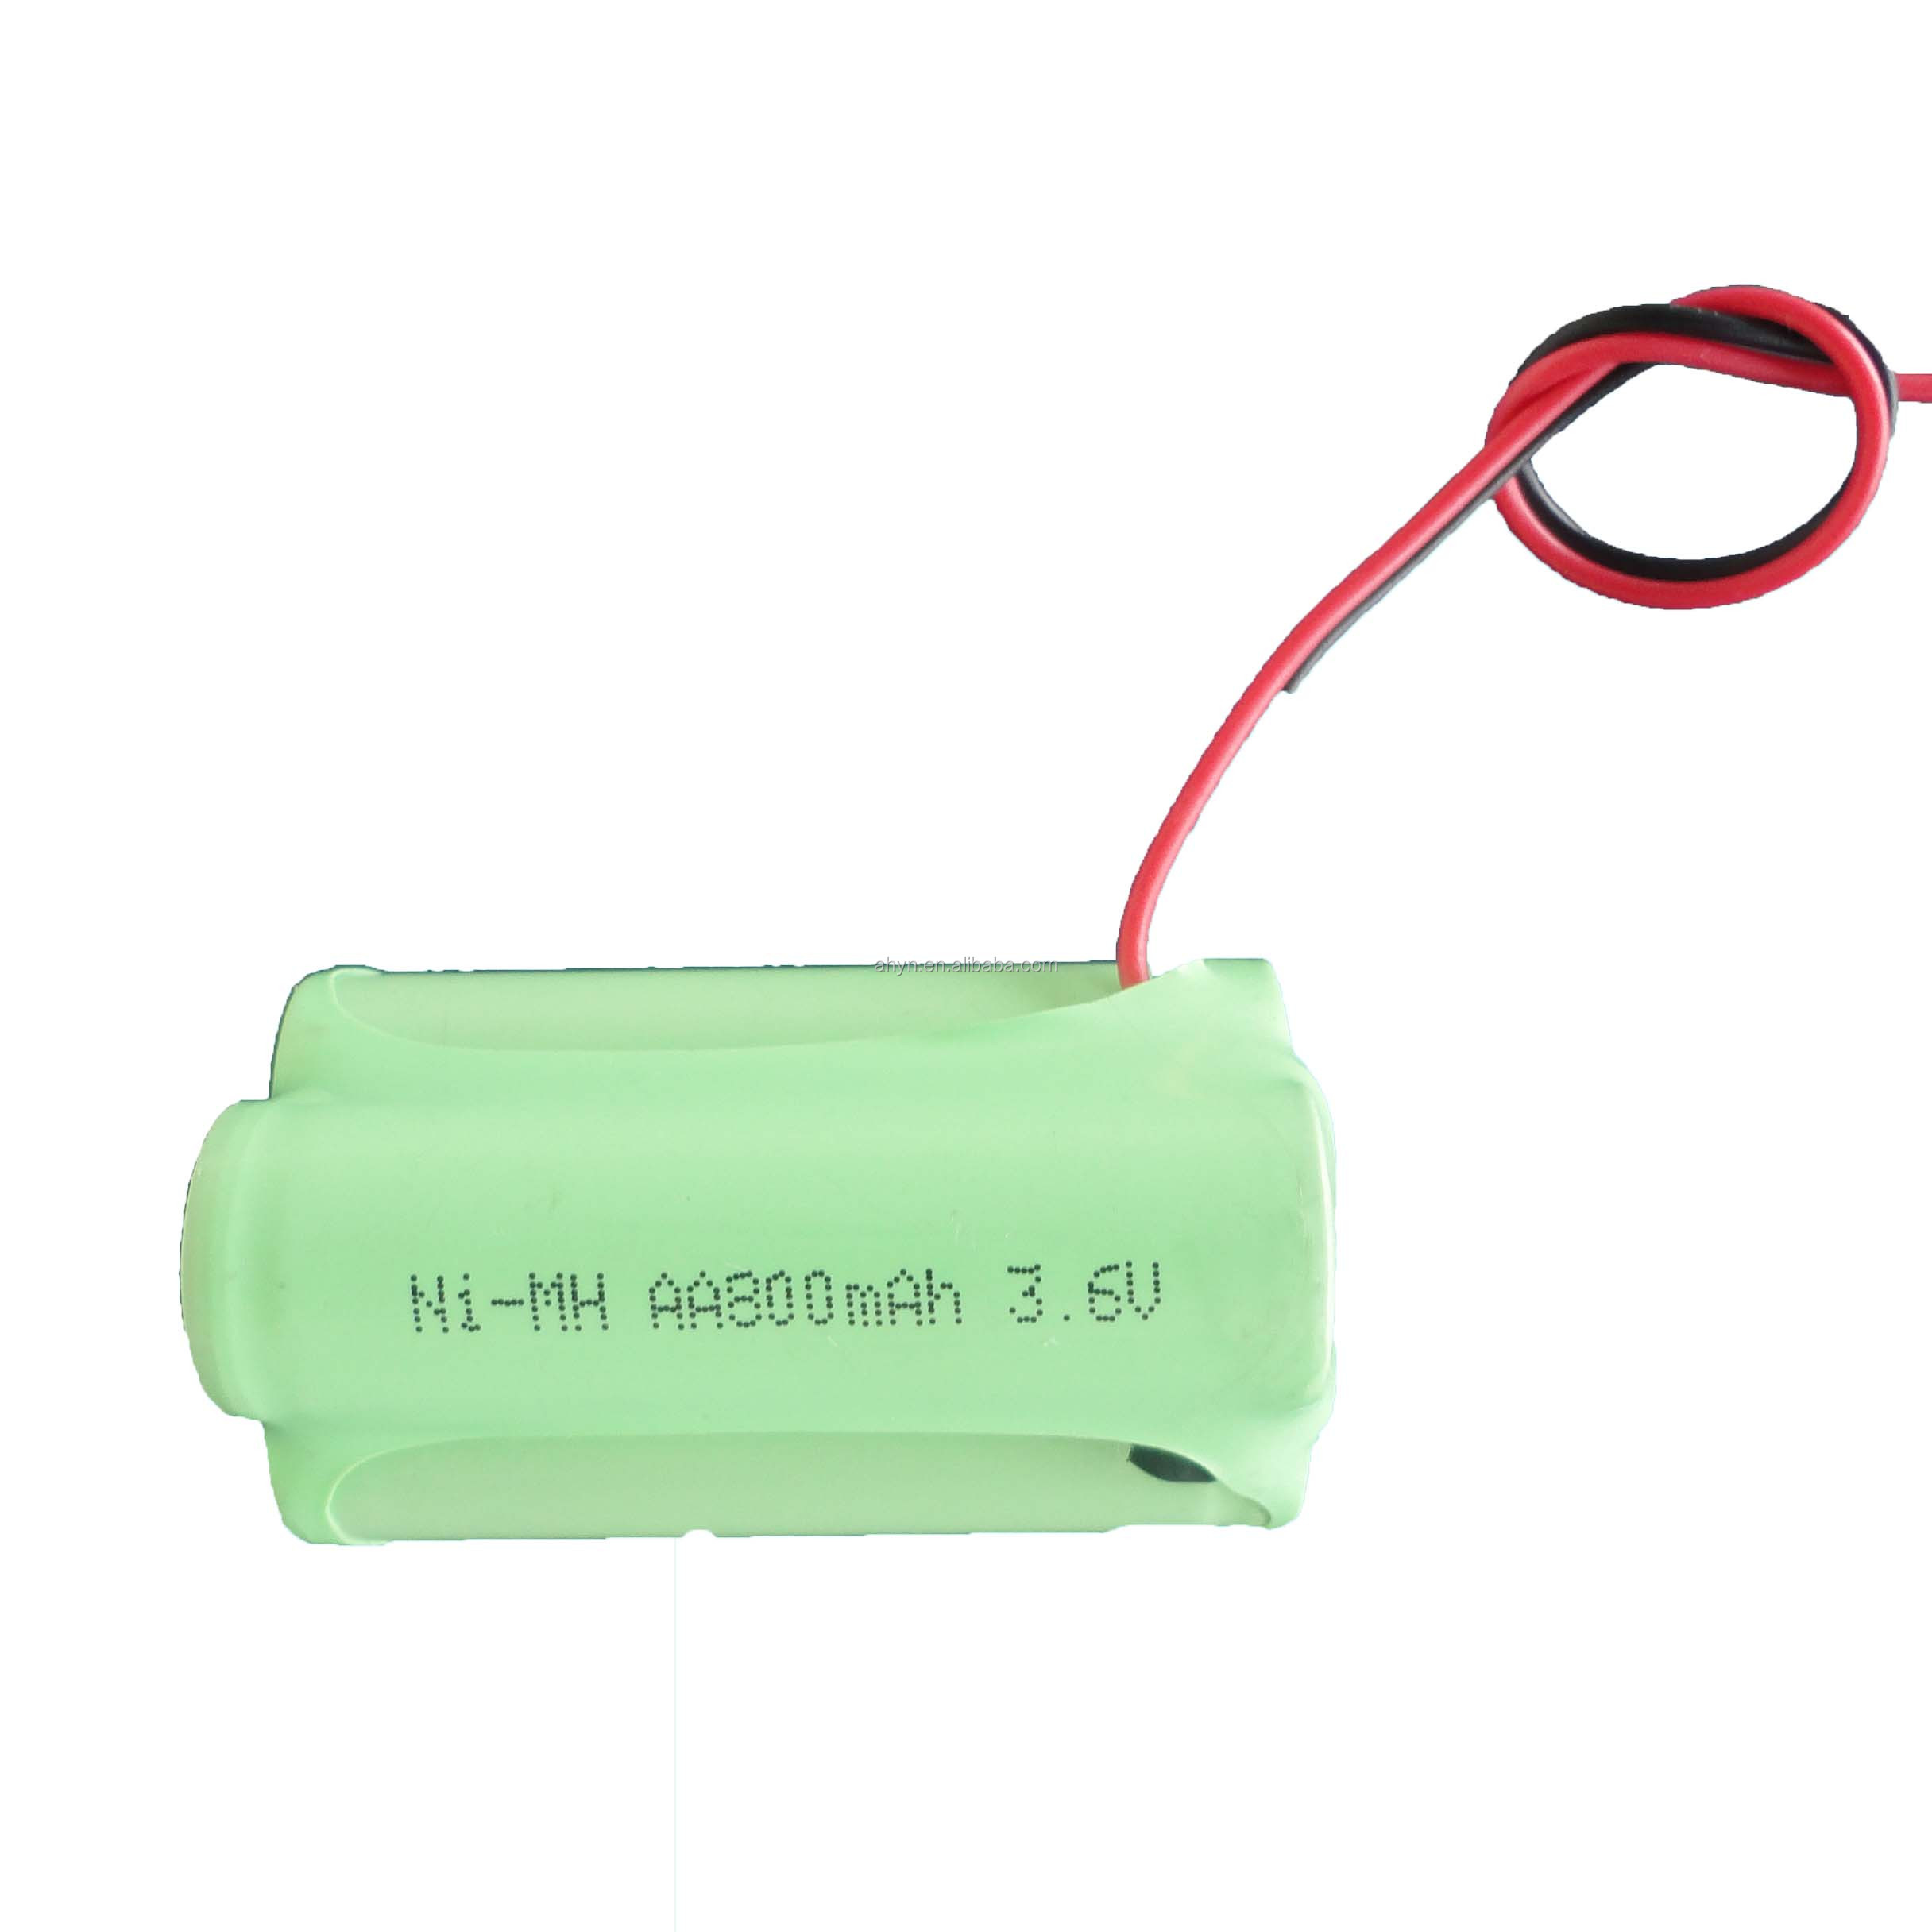 AA600mah rechargeable nimh 3.6V battery cell for emergency light